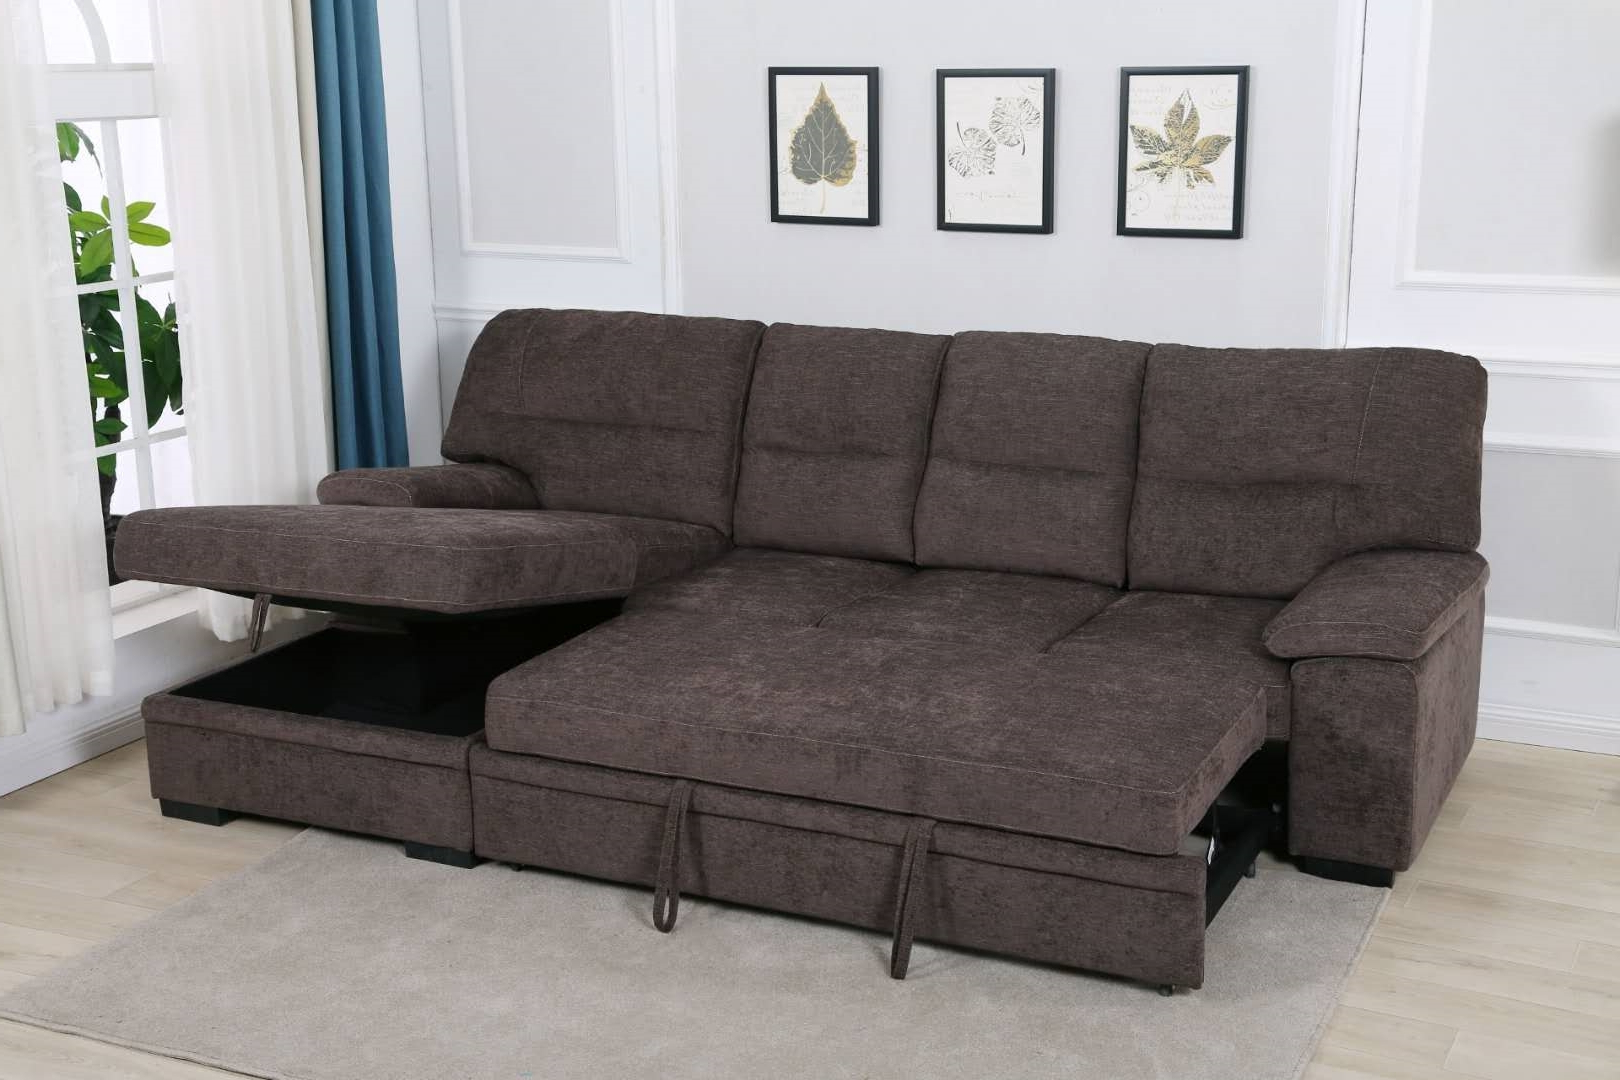 Most Recently Released Silvio Sectional Sofa/ Sofa Bed With Storage Ifurniture Pertaining To Live It Cozy Sectional Sofa Beds With Storage (View 5 of 20)